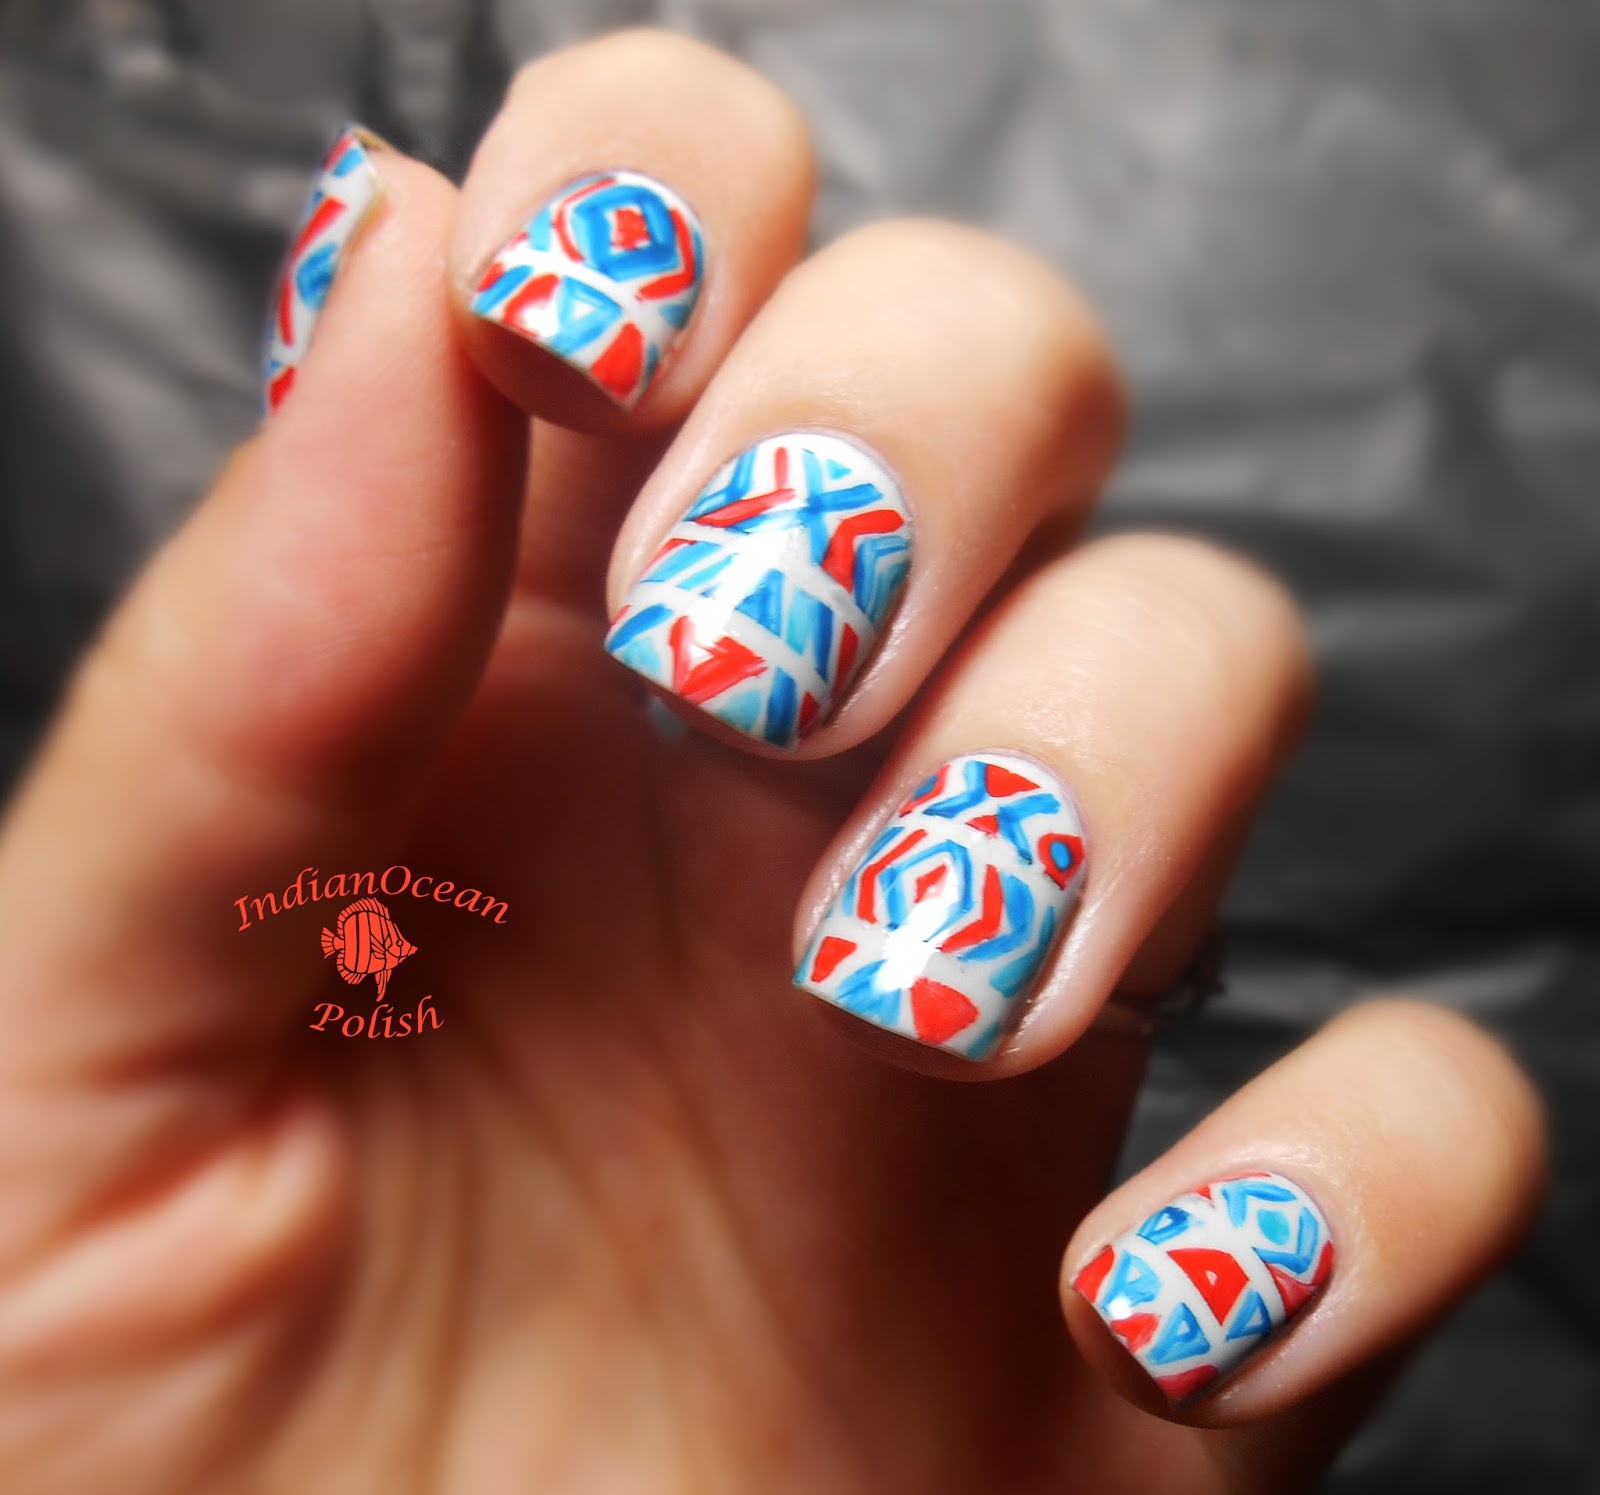 Indian ocean polish tribal print nails inspired by wondrously tribal print nails inspired by wondrously polished prinsesfo Image collections